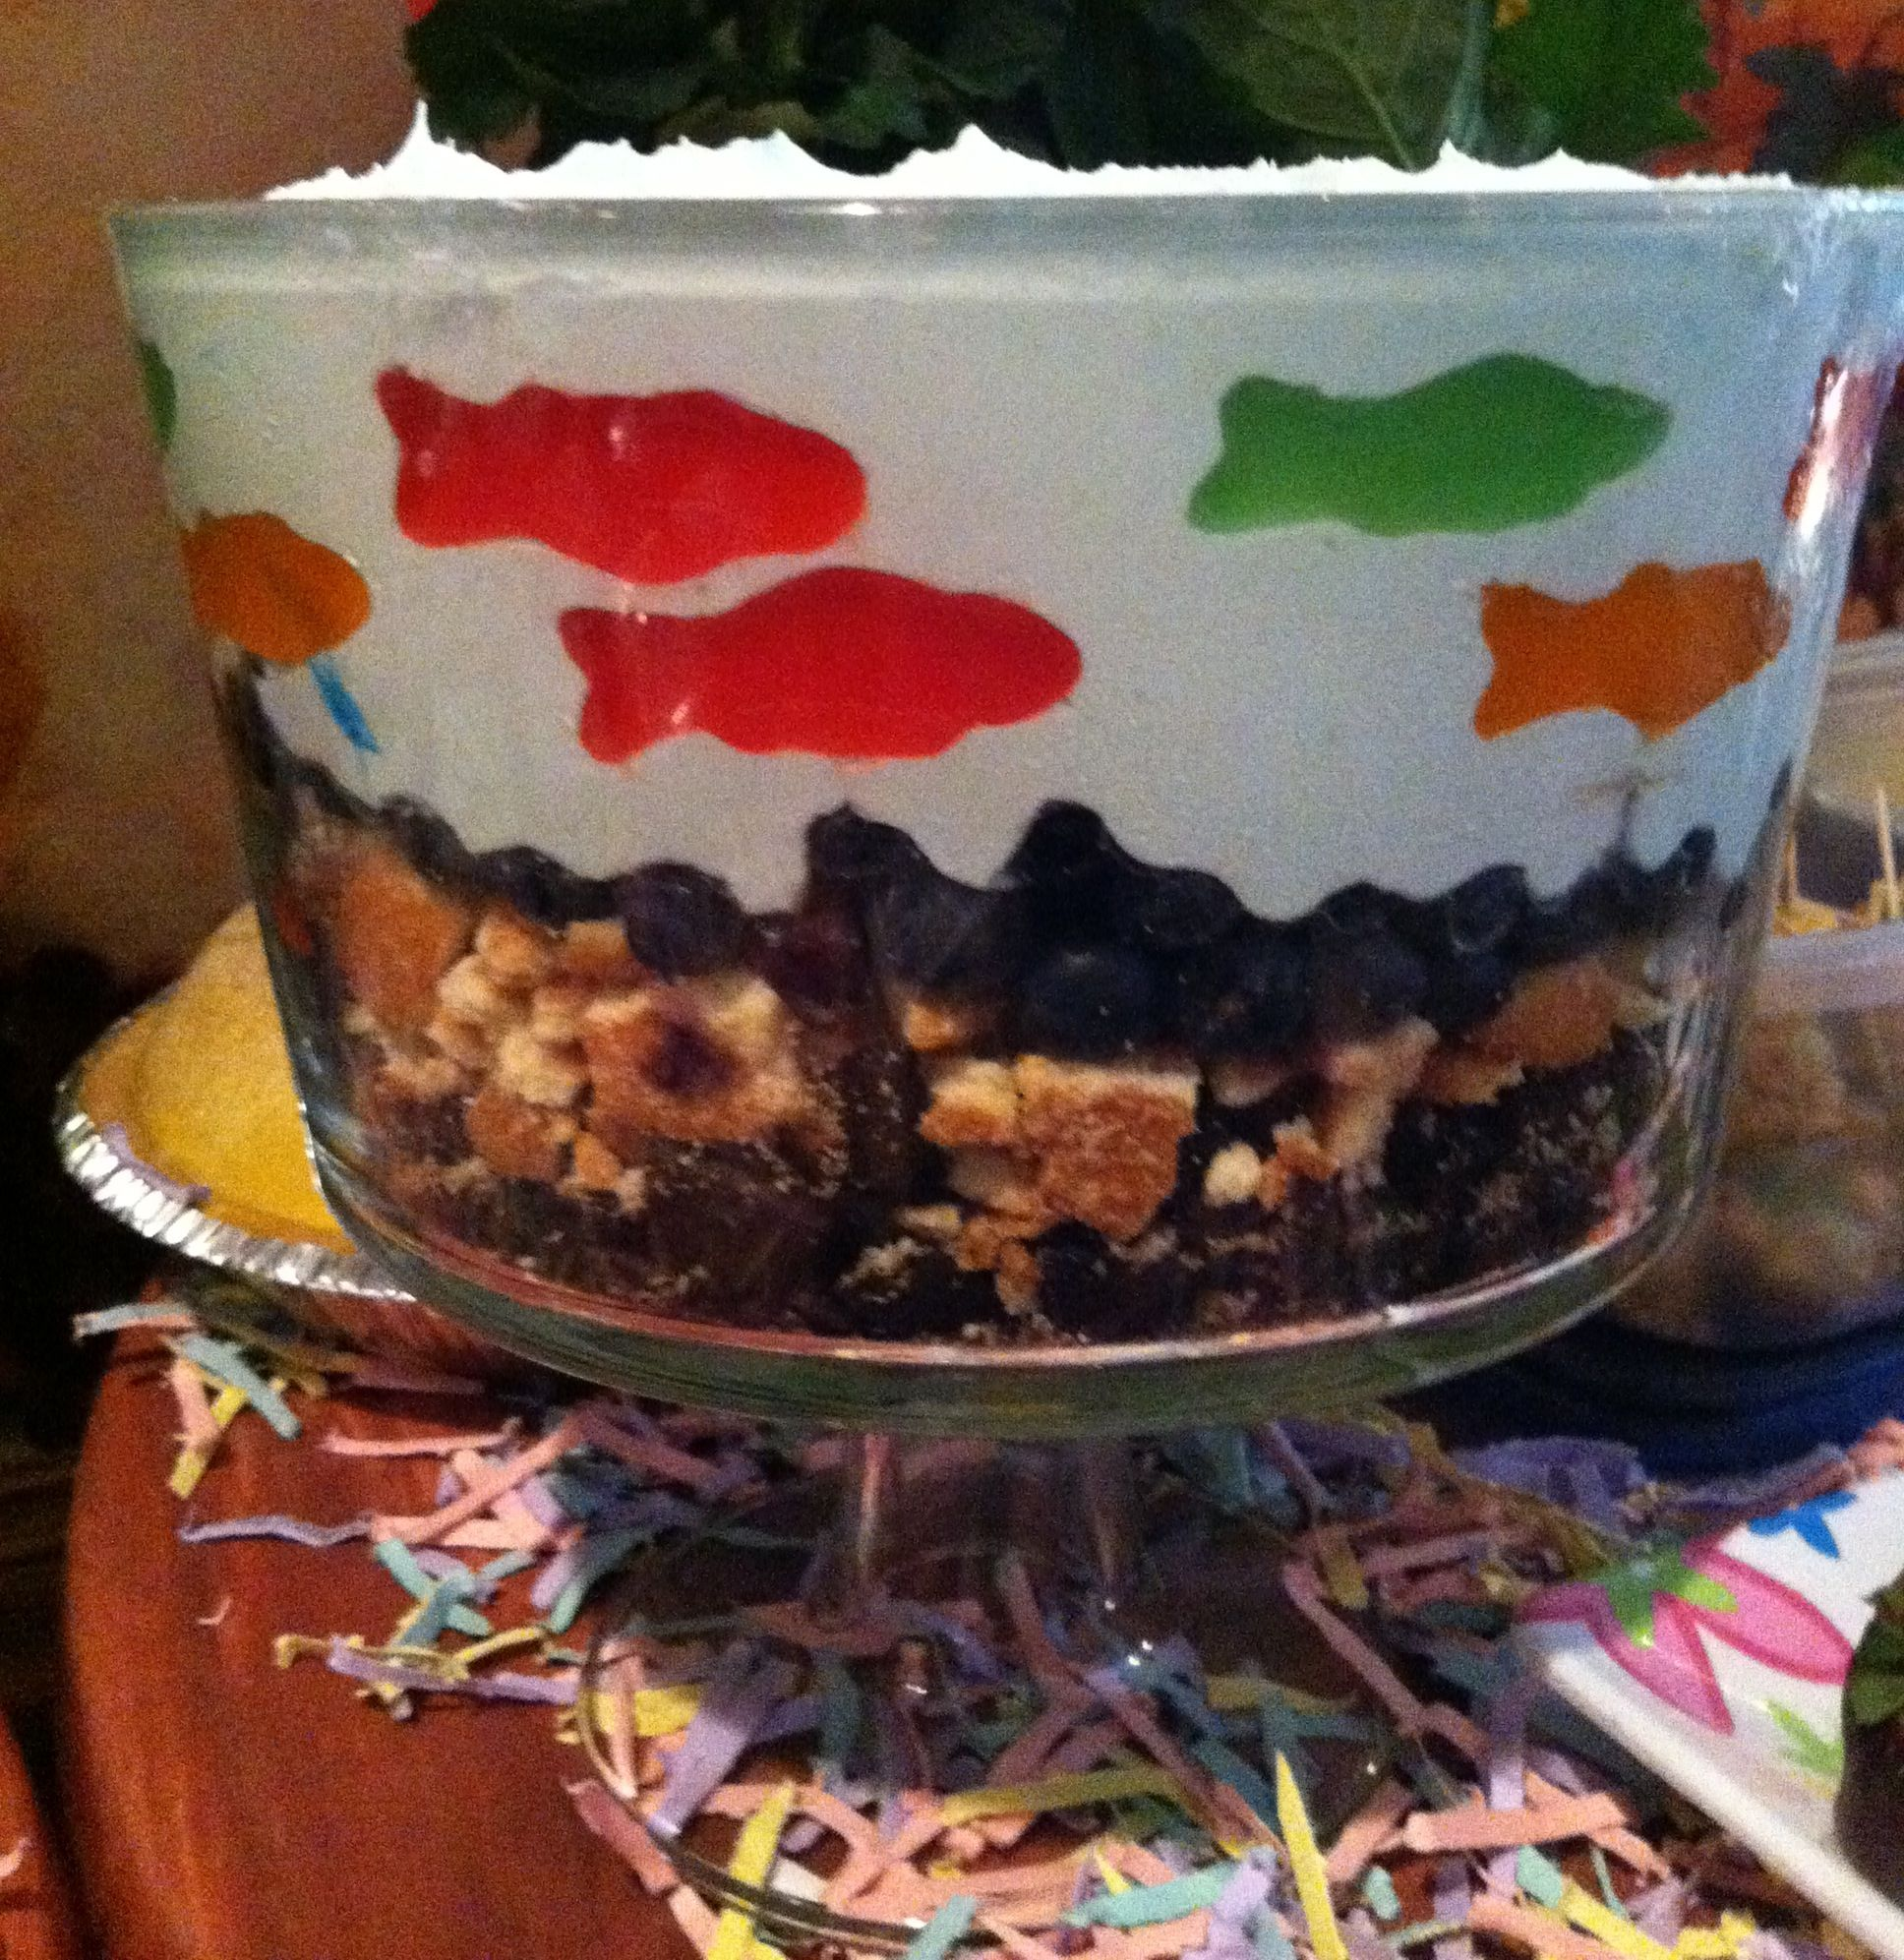 fish or oceanthemed trifle for a fishthemed baby shower i